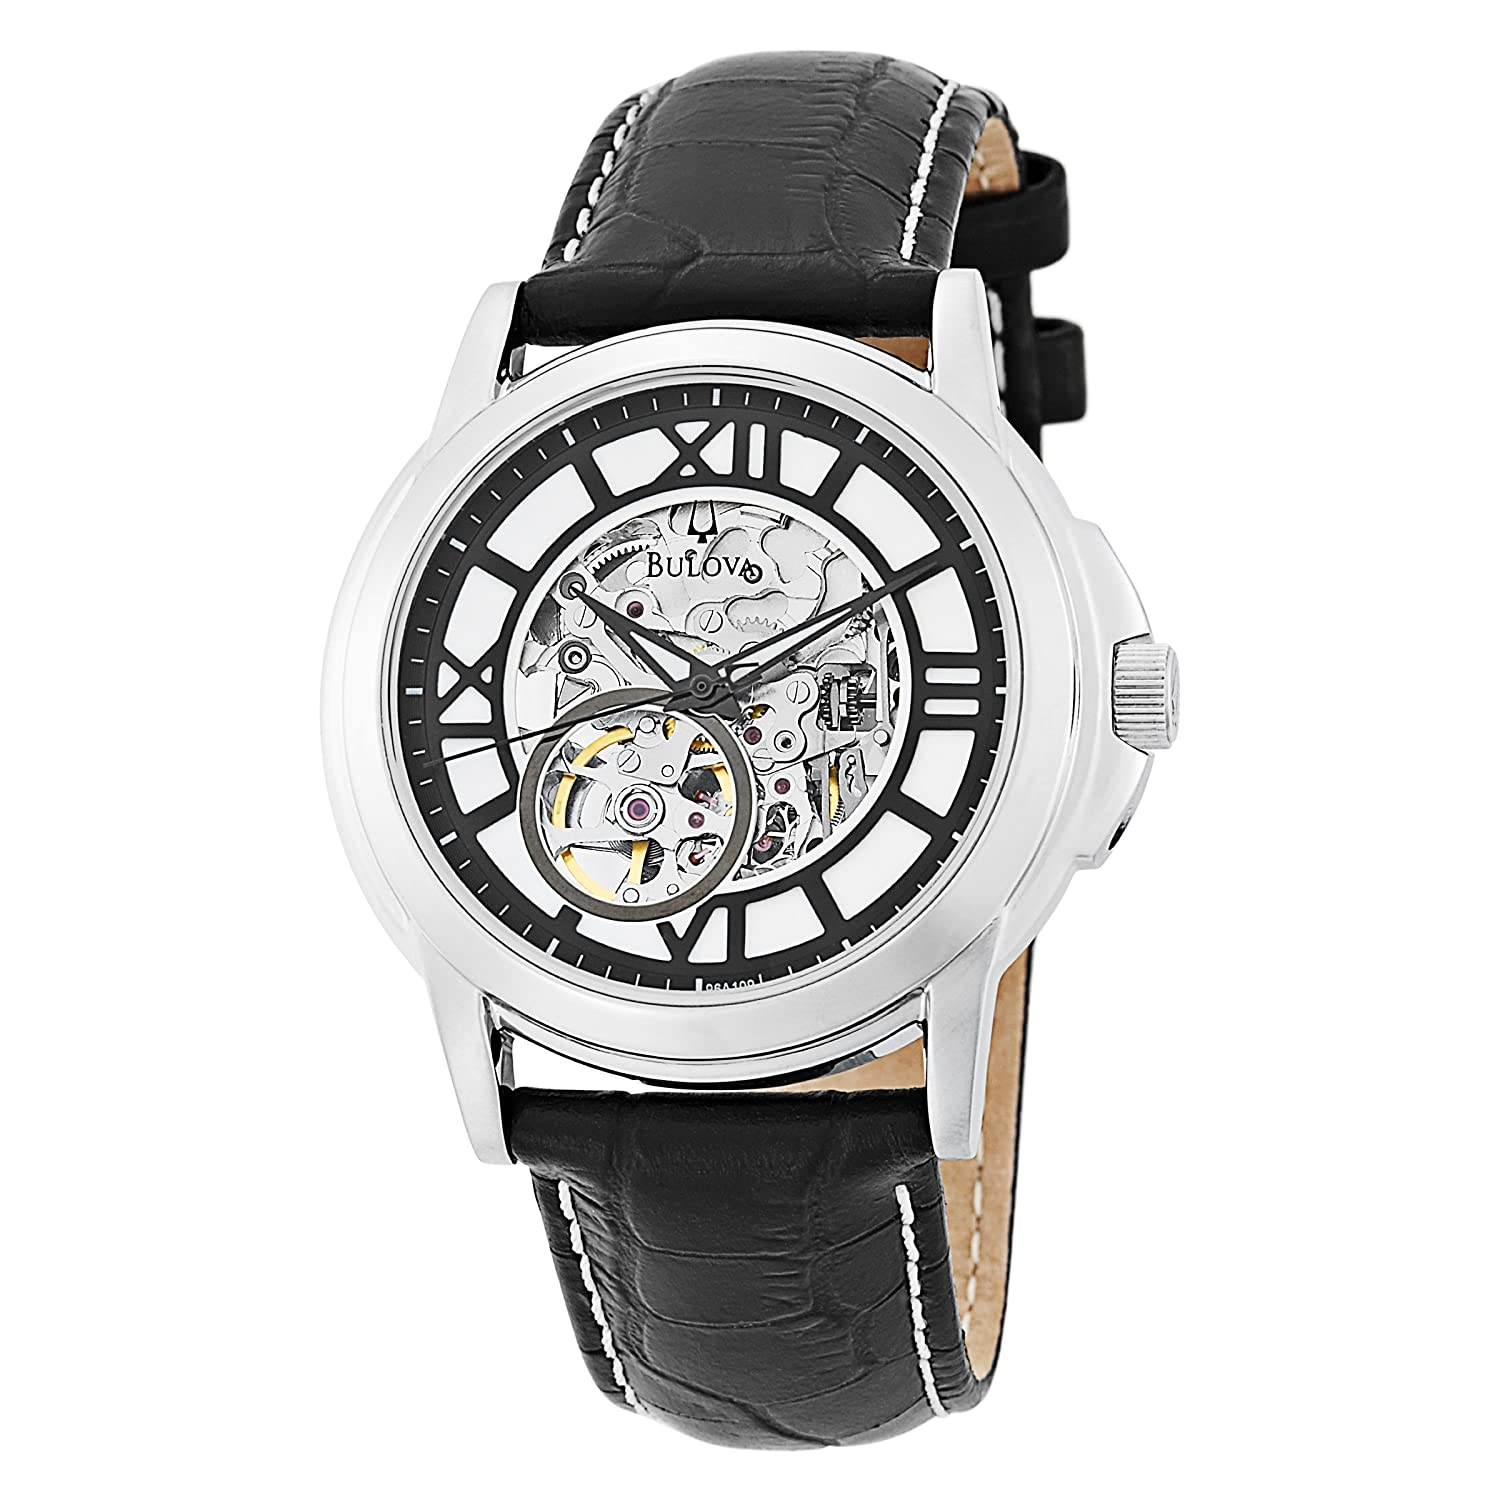 swiss made skeleton watches 163 150 163 400